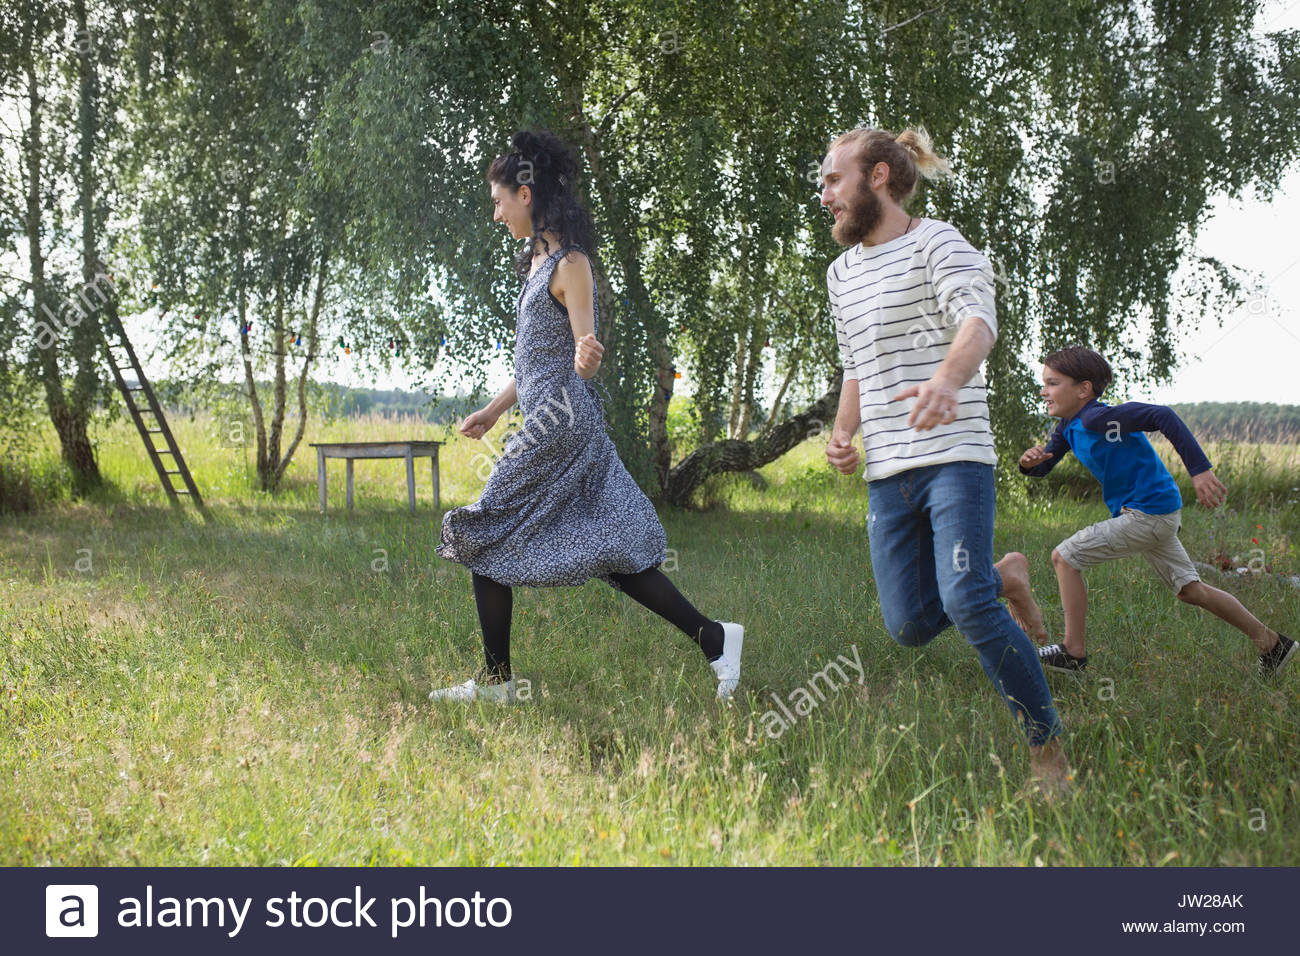 Playful family running in rural yard - Stock Image